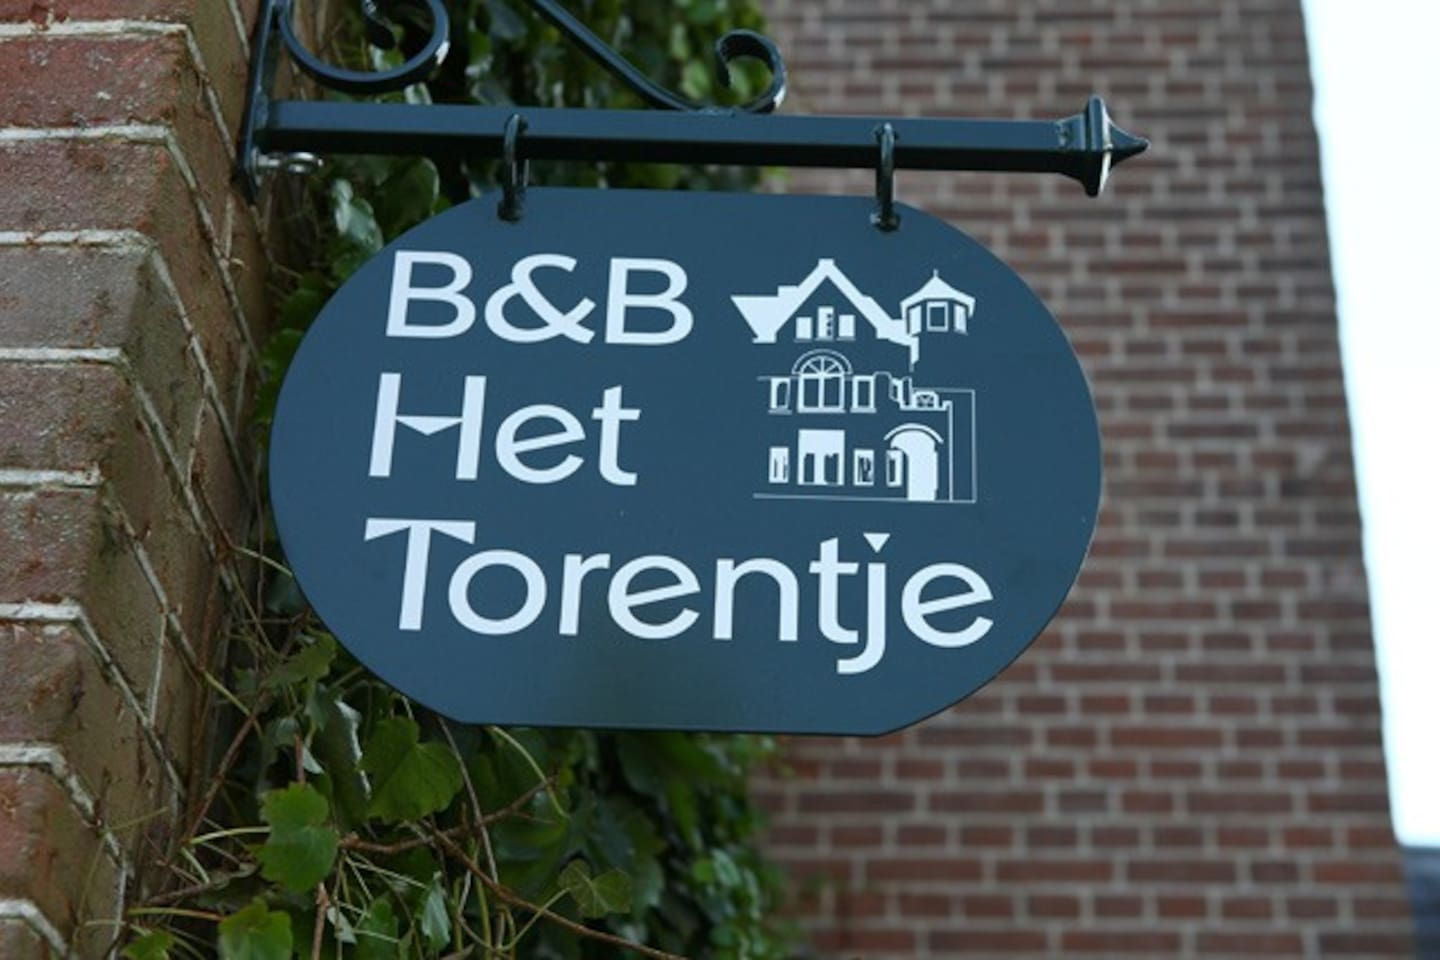 B&b het torentje   portugal kamer   bed & breakfasts te huur in ...